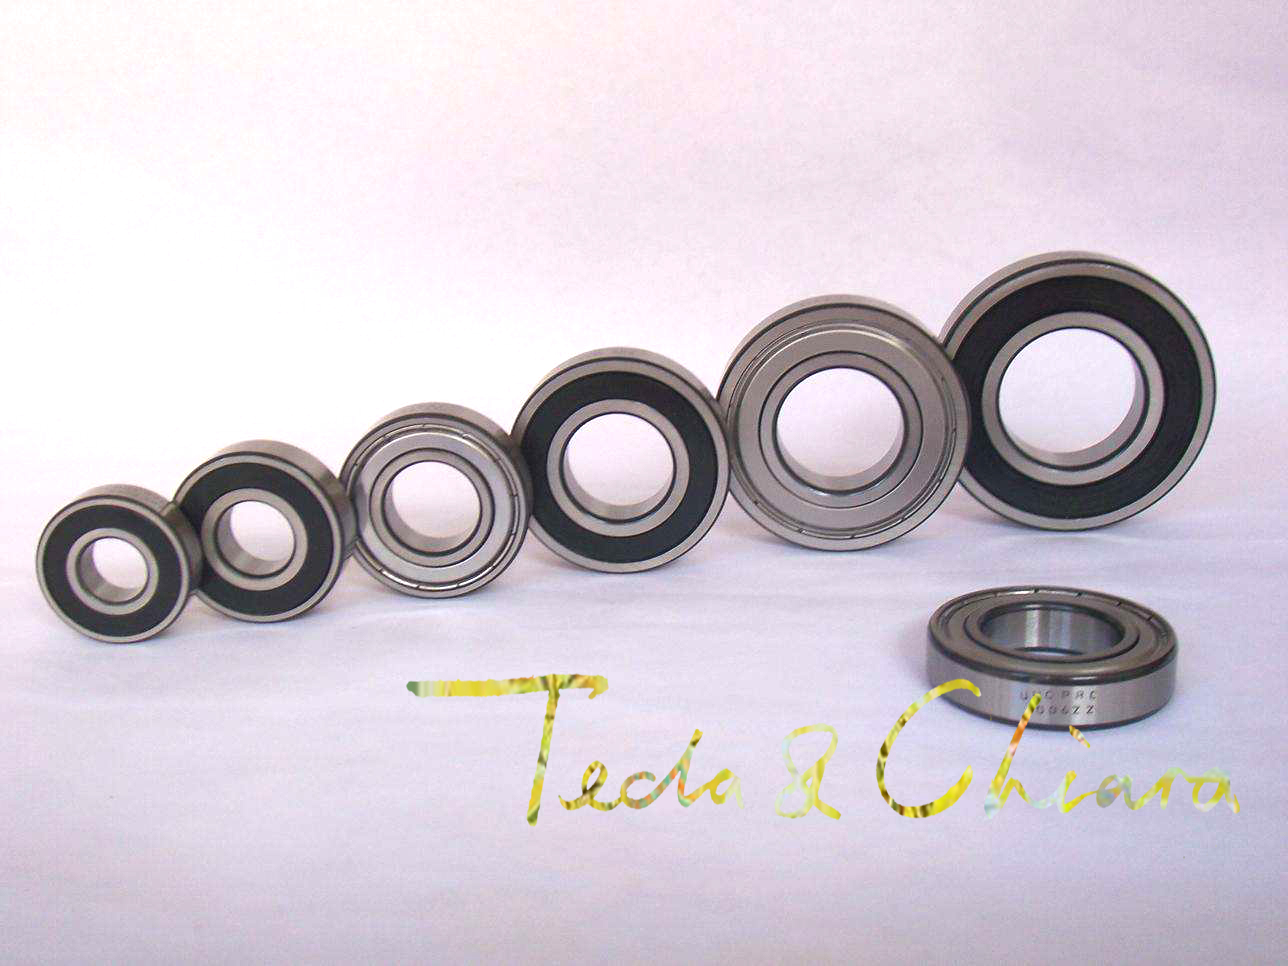 6302 6302ZZ 6302RS 6302-2Z 6302Z 6302-2RS ZZ RS RZ 2RZ Deep Groove Ball Bearings 15 x 42 x 13mm High Quality 6902 6902zz 6902rs 6902 2z 6902z 6902 2rs zz rs rz 2rz deep groove ball bearings 15 x 28 x 7mm high quality